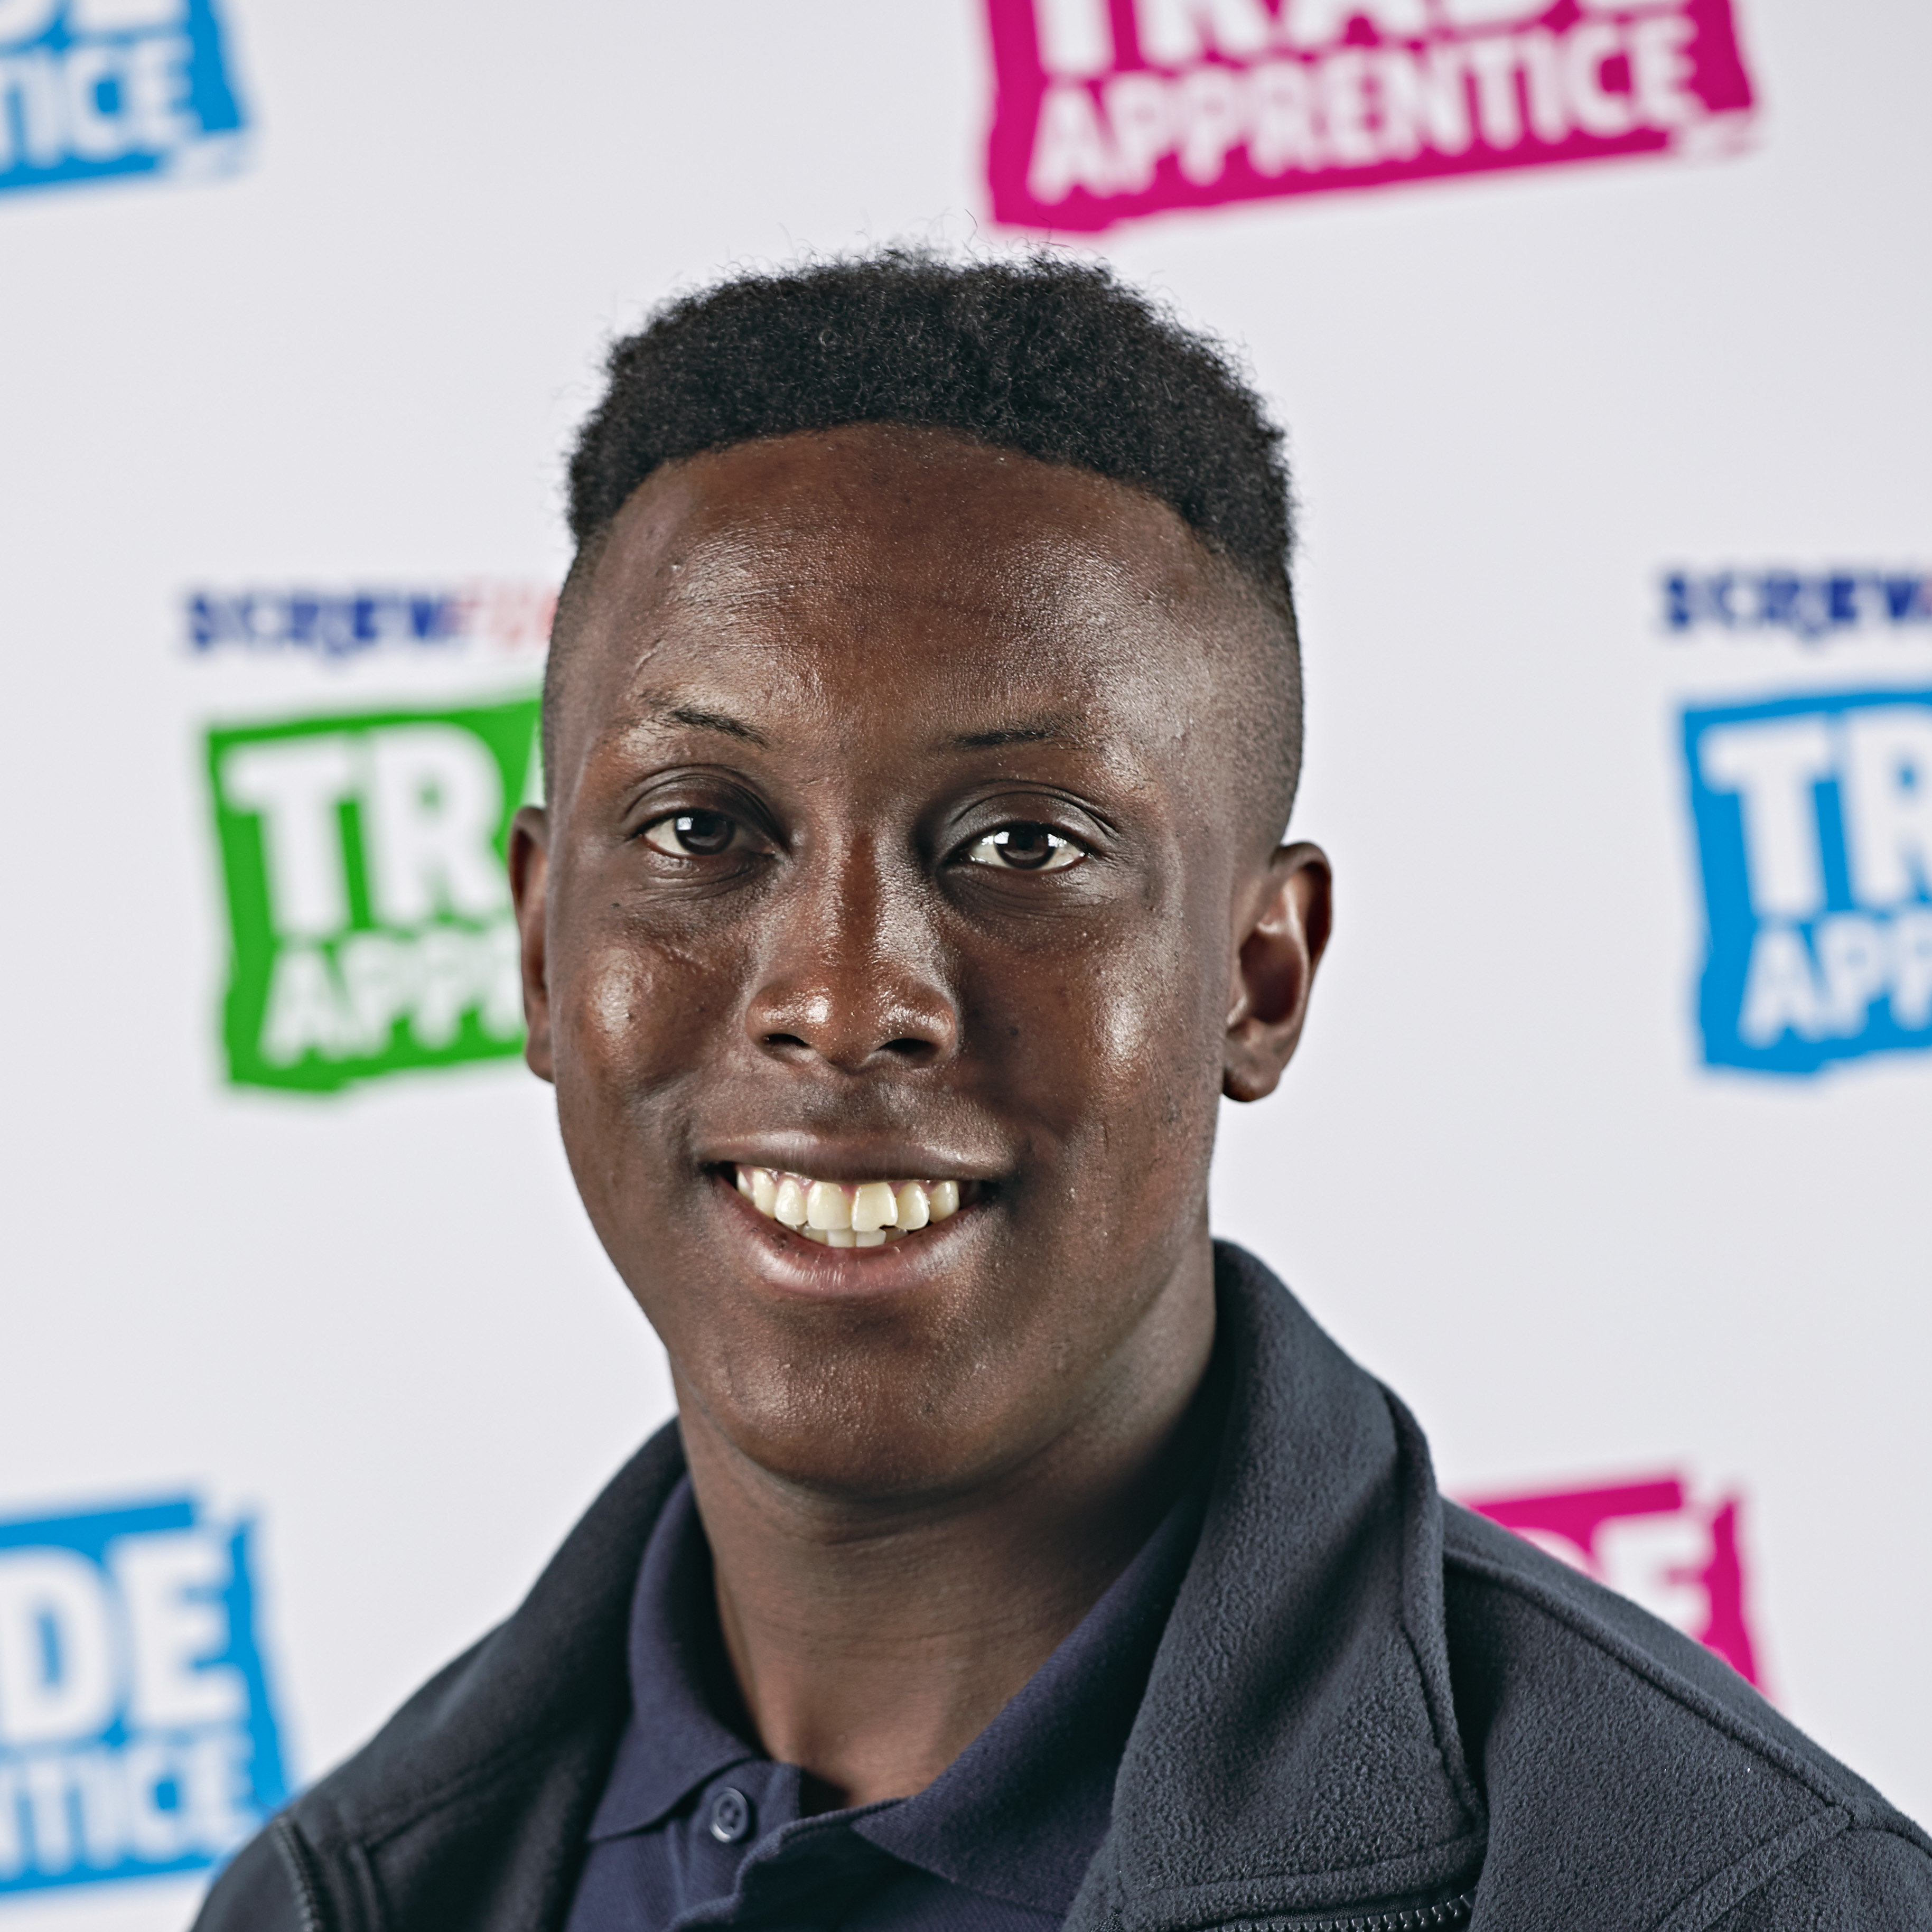 Glasgow apprentice honoured at national apprentice competition